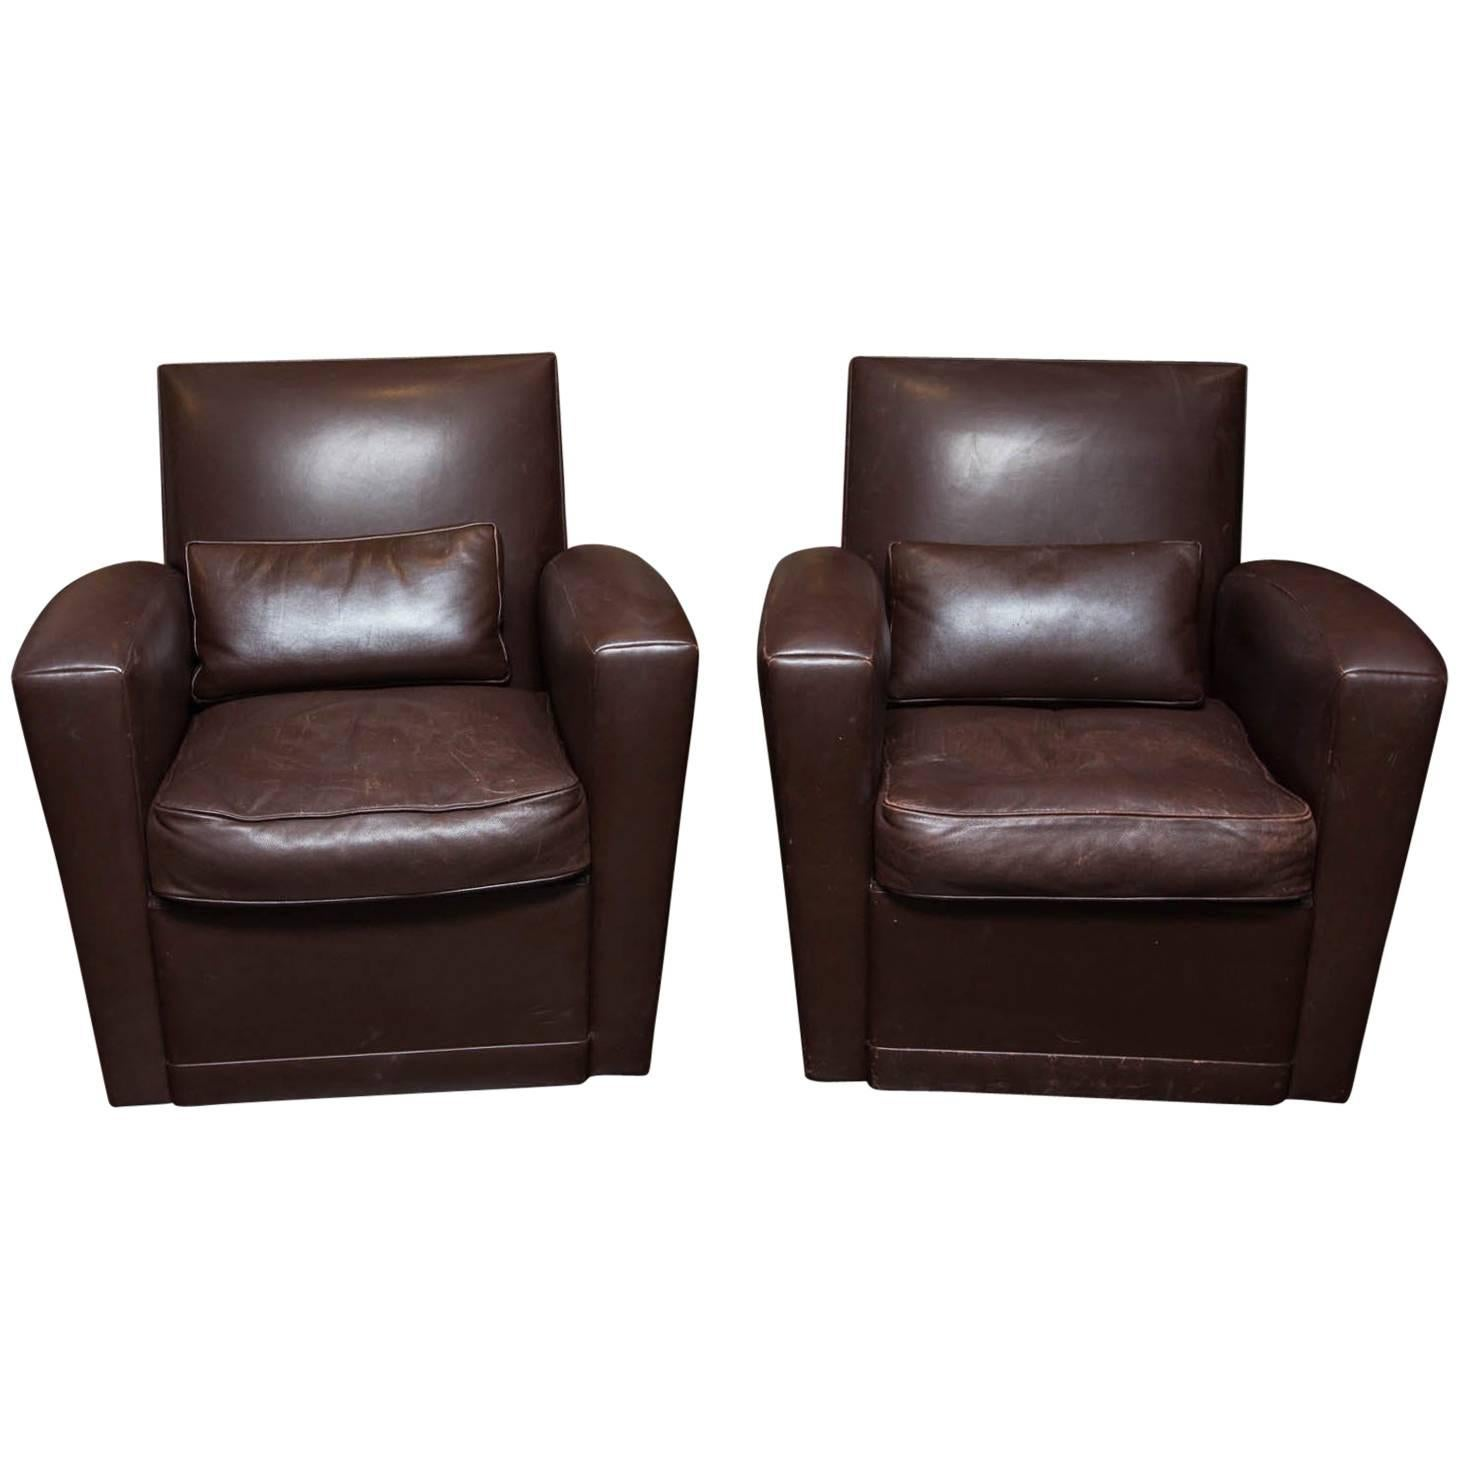 brown swivel chair best baby holly hunt leather chairs at 1stdibs for sale